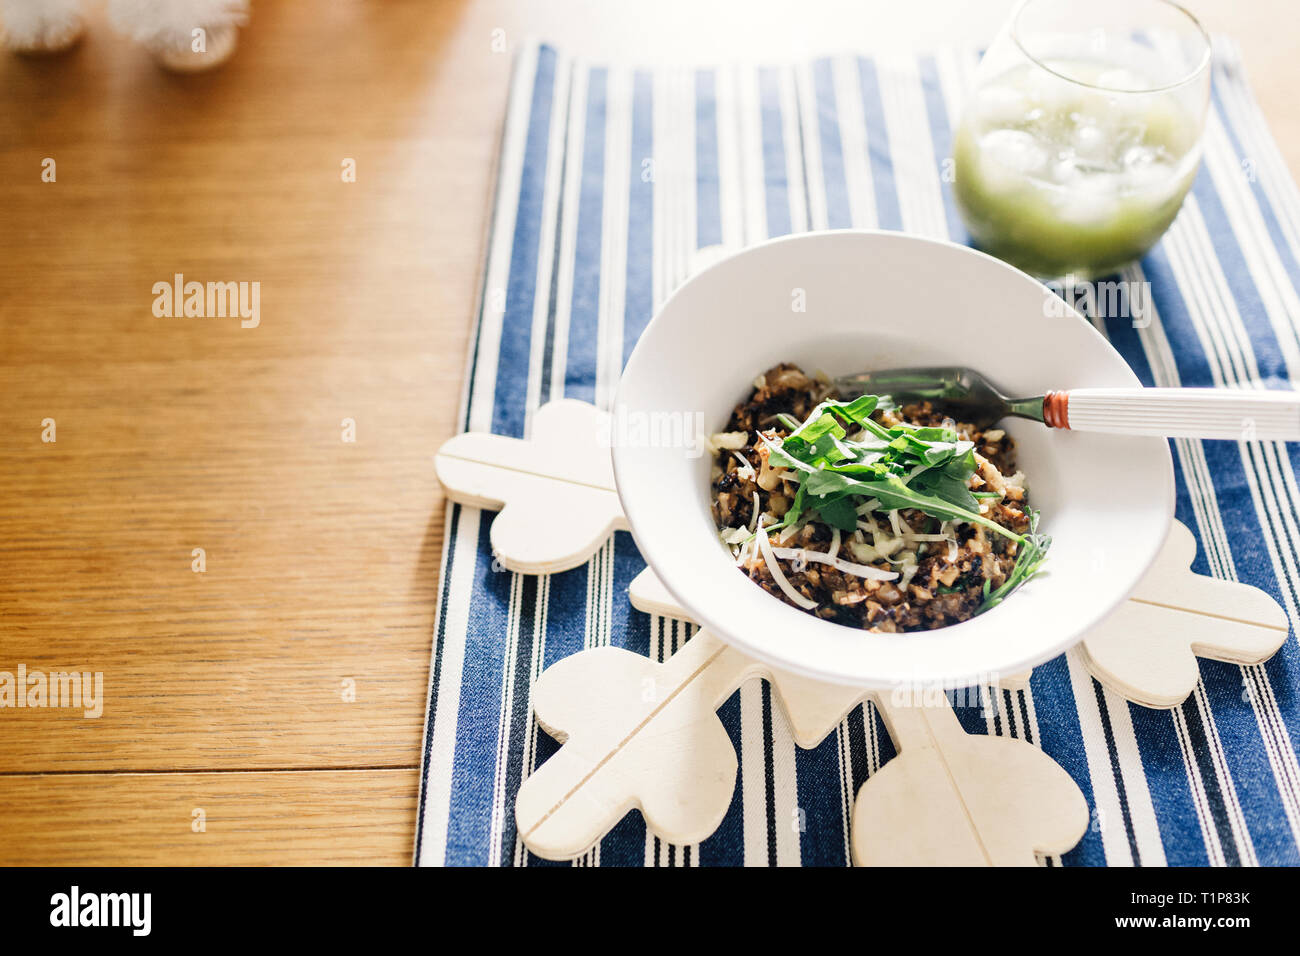 Overhead of risotto salad and green juice - Stock Image